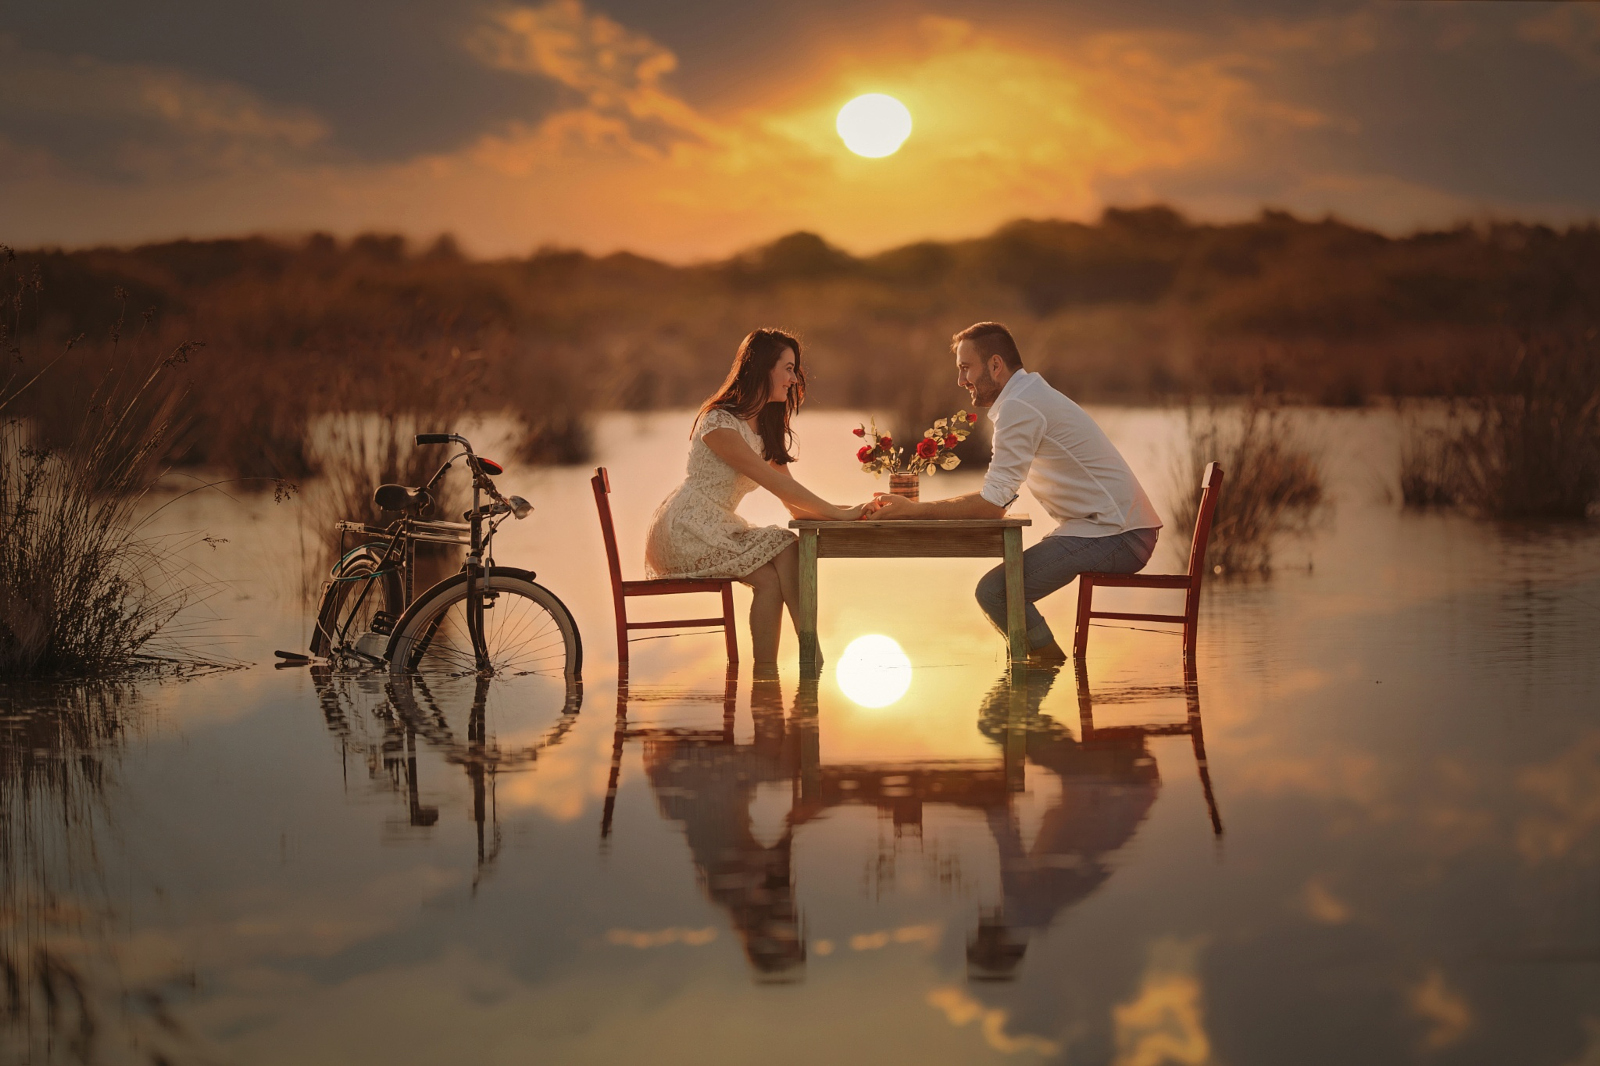 BTS: Capturing the Most Popular Valentine's Day Photo on 500px